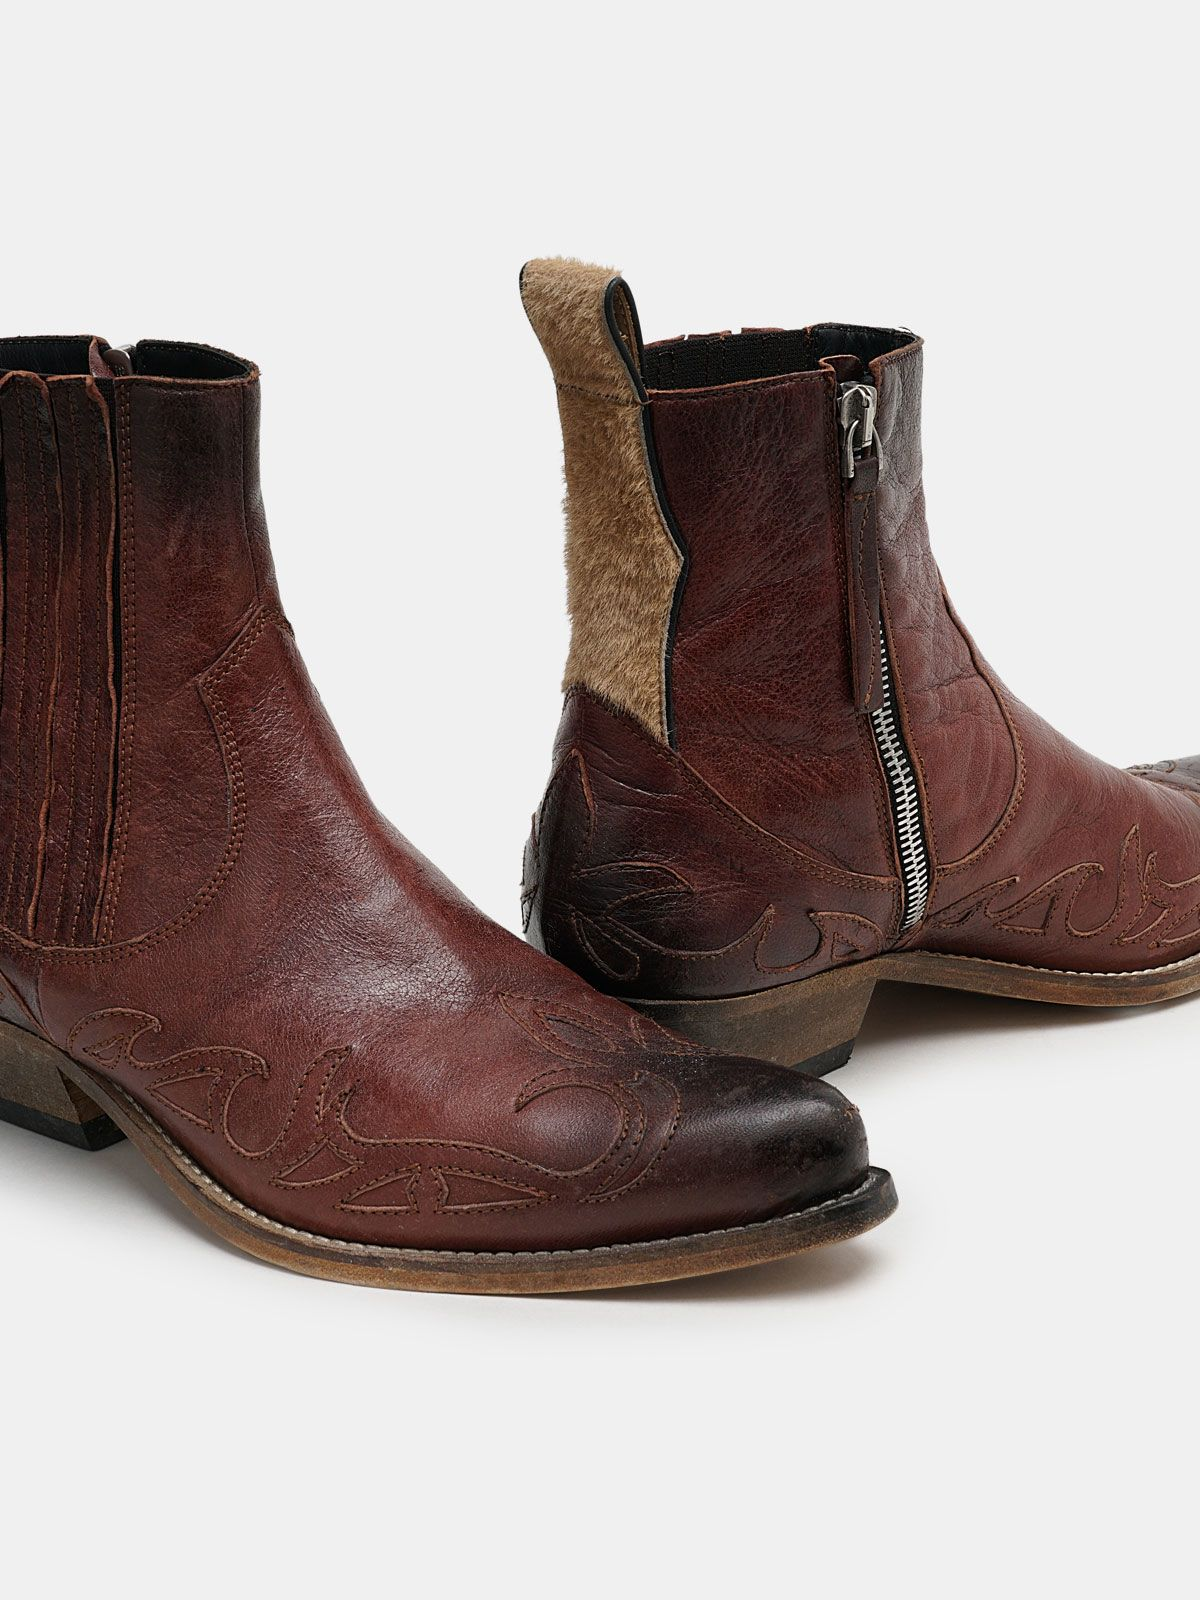 Golden Goose - Santiago burgundy ankle boots with pony skin insert in